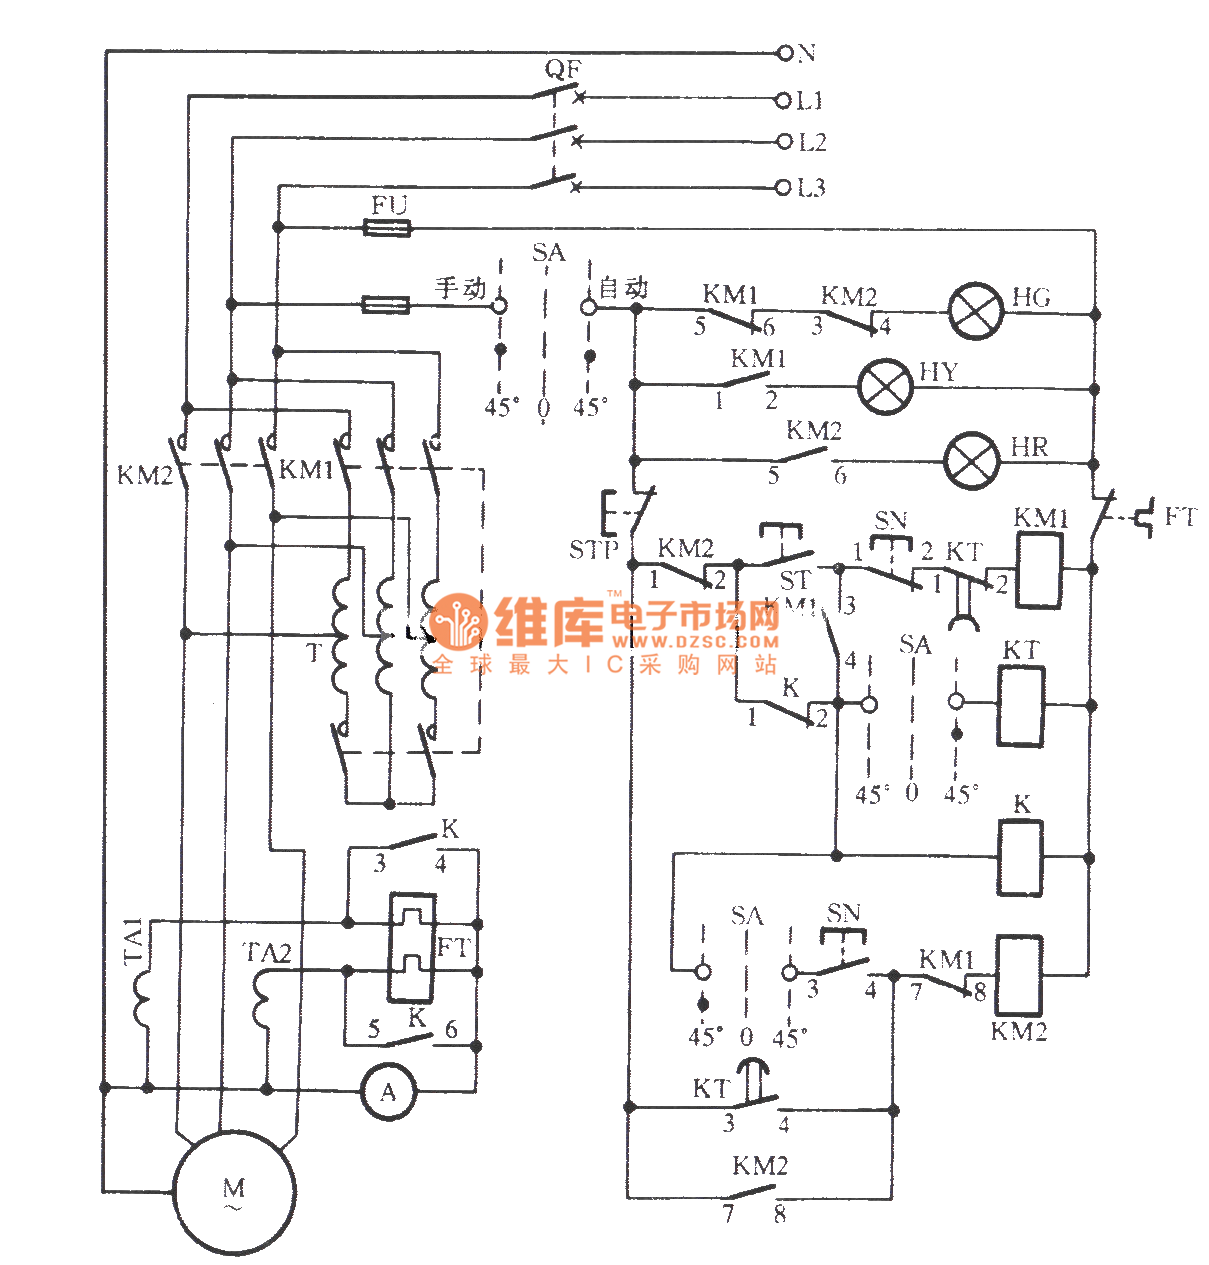 wiring diagram motor control with Vertical Mill Electrical Control Circuit on 278661342 Suzuki Outboard Motor V6 Df200 Df225 Df250 moreover Potentiometer in addition Wiring Connections likewise Motor Wiring Diagram also Demag Crane Wiring Diagram.